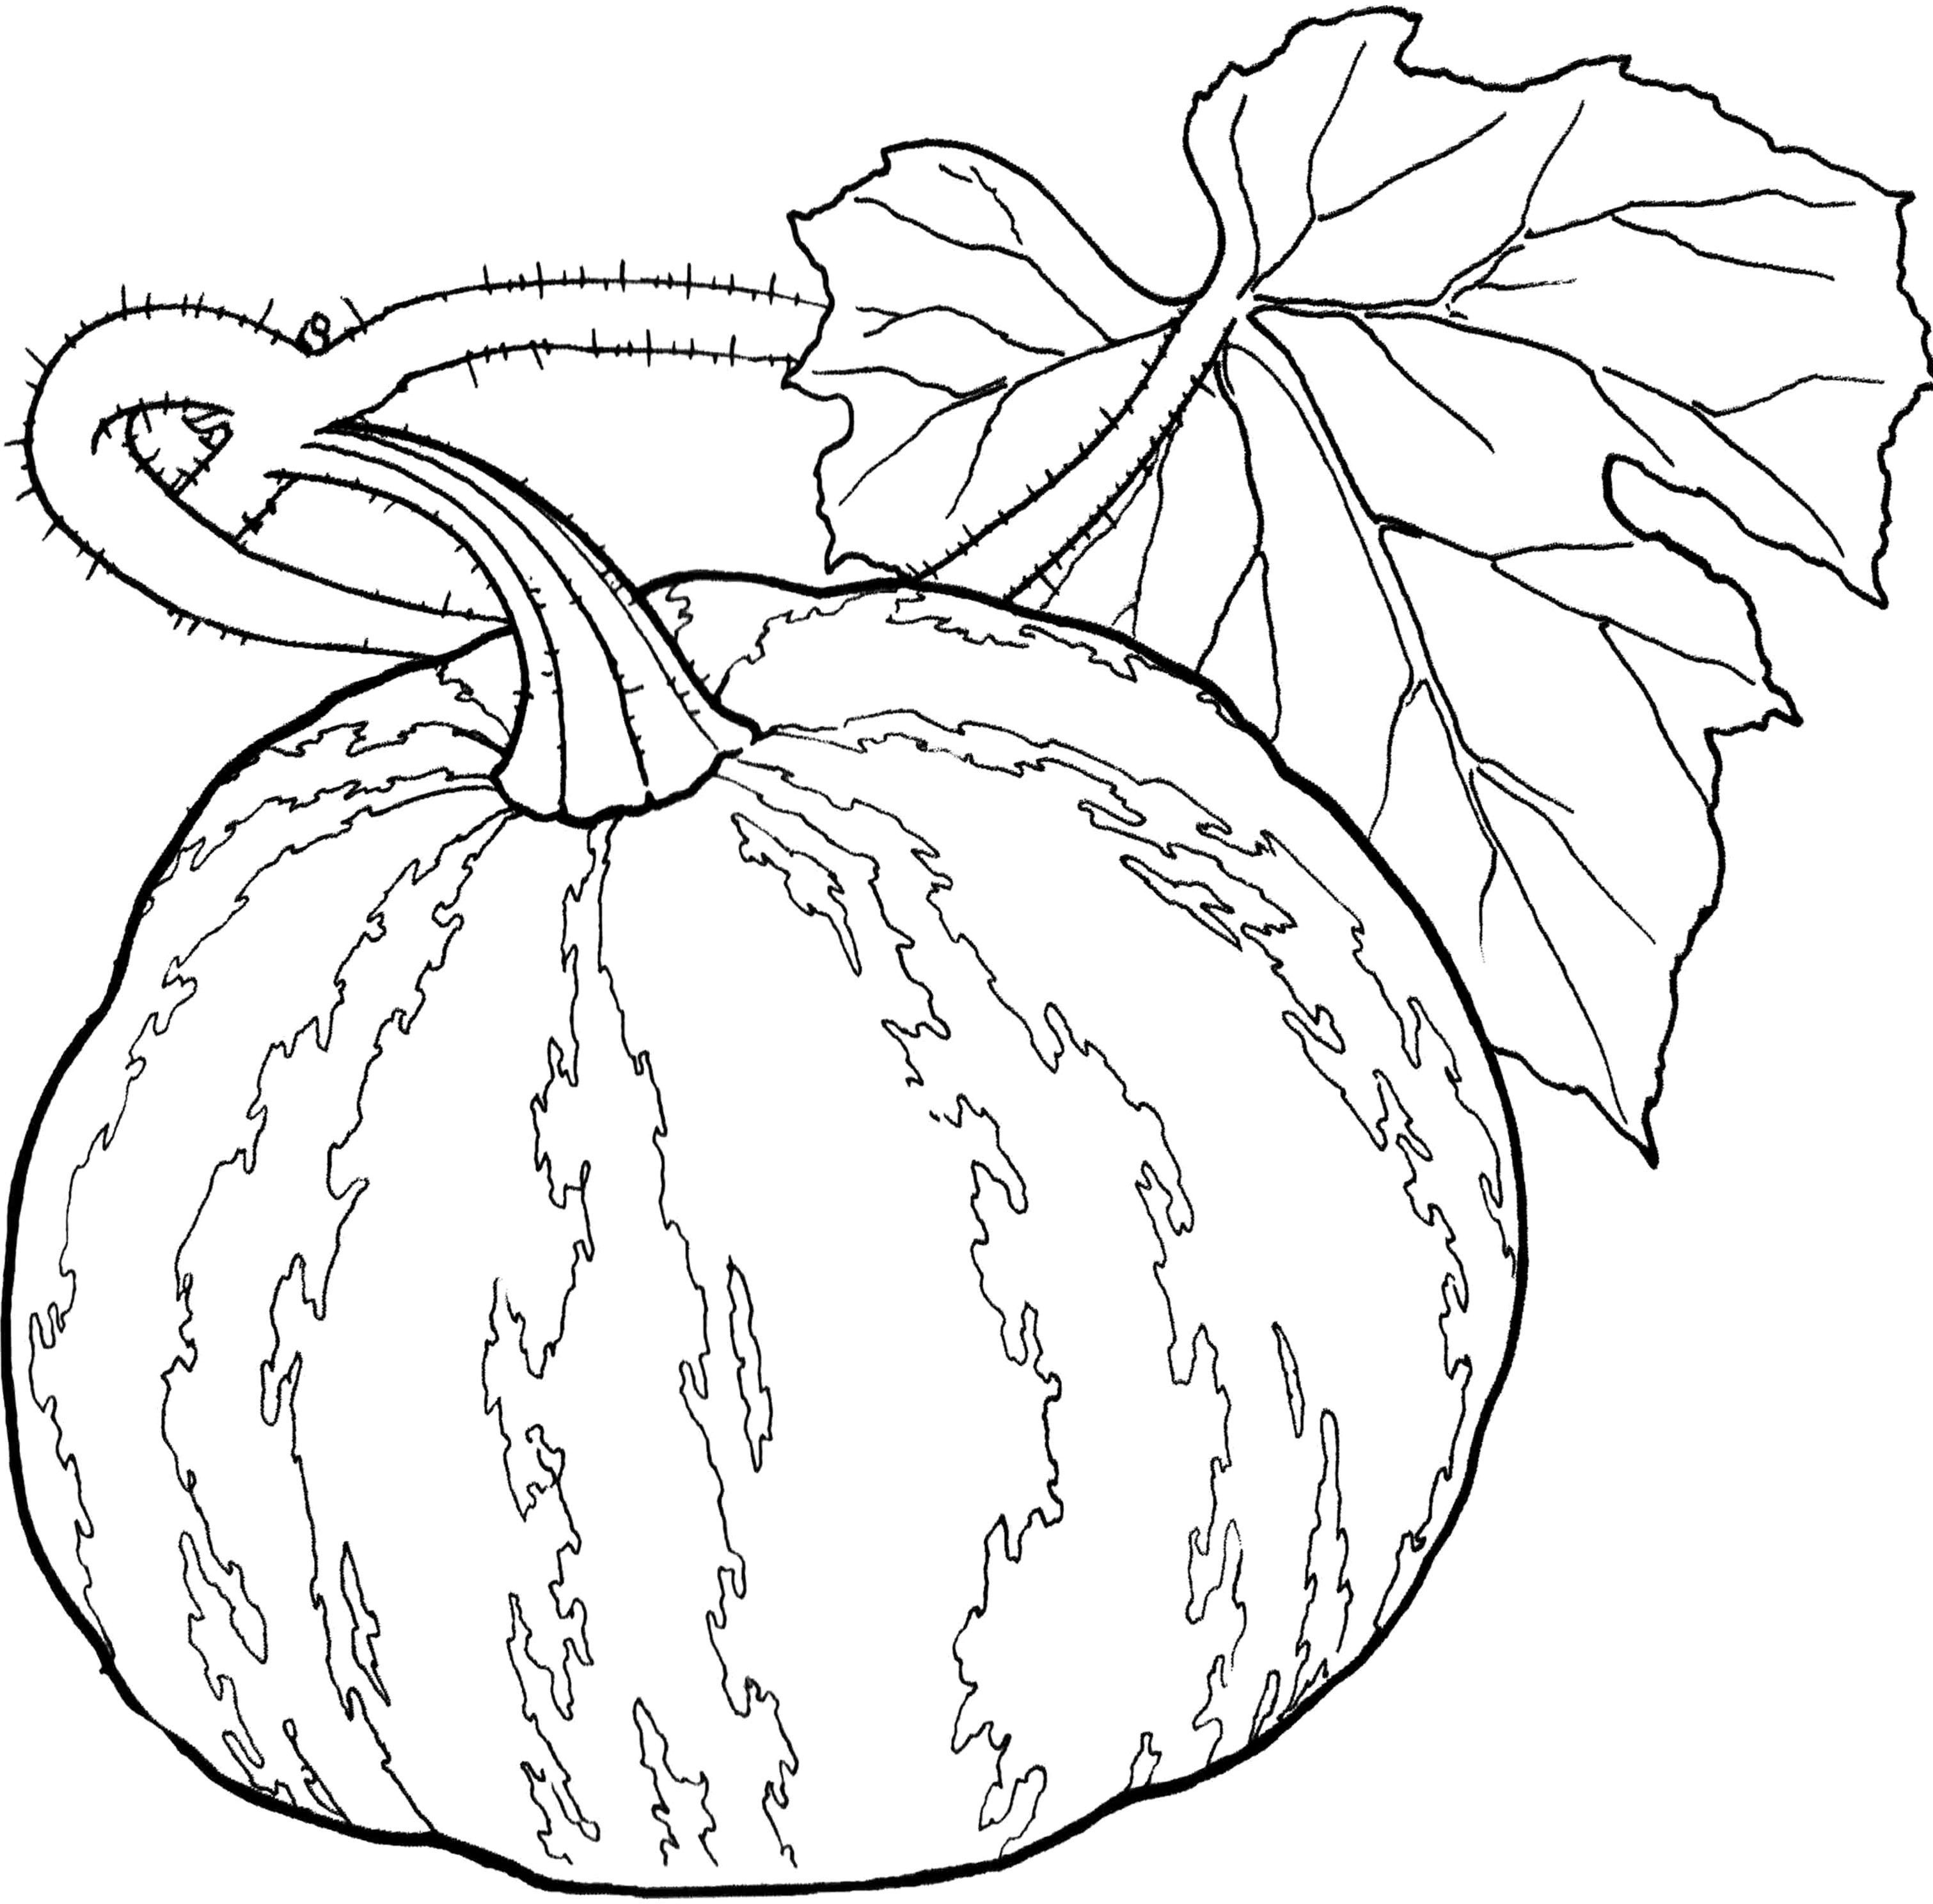 pumpkin and leaves coloring pages pictures vegetables pumpkin and leaves a wide coloring for coloring pumpkin and leaves pages